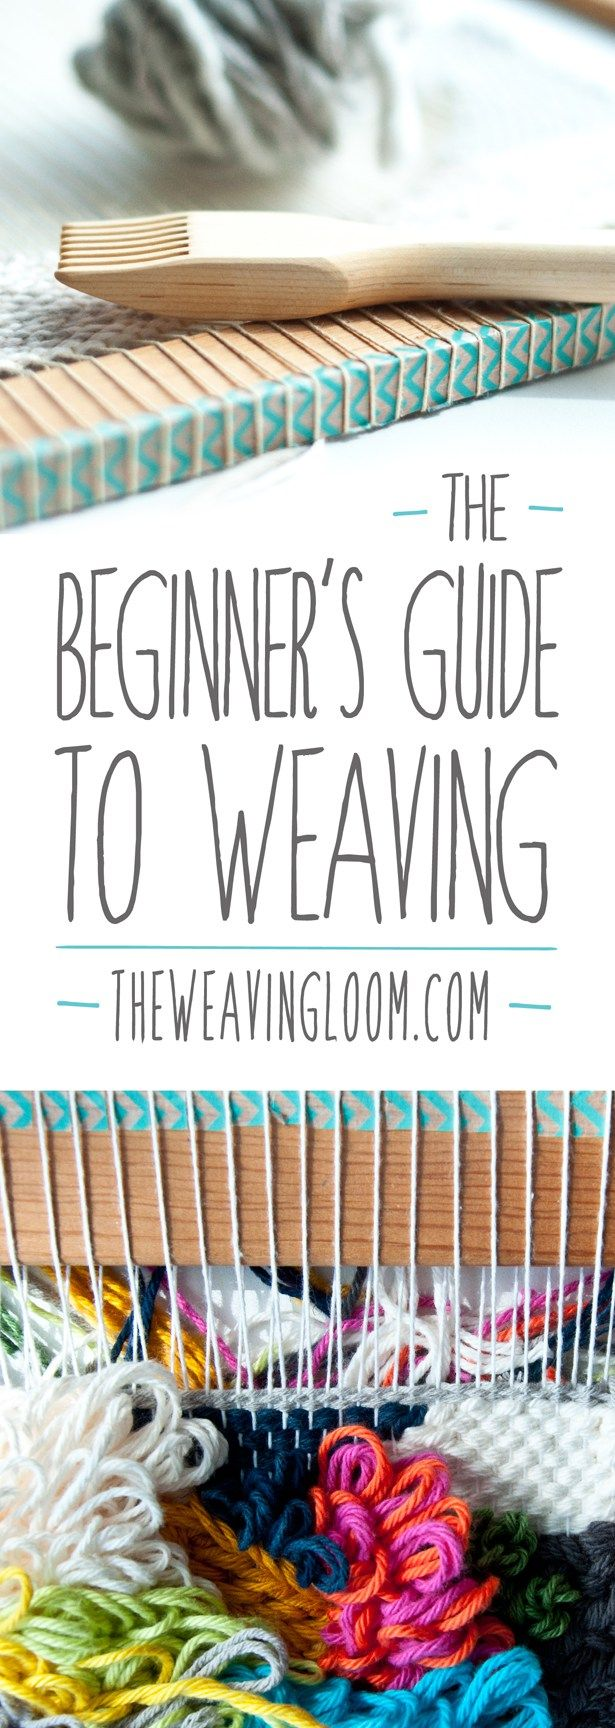 Tips, links and resources from Kate, founder of the Weaving Loom blog.